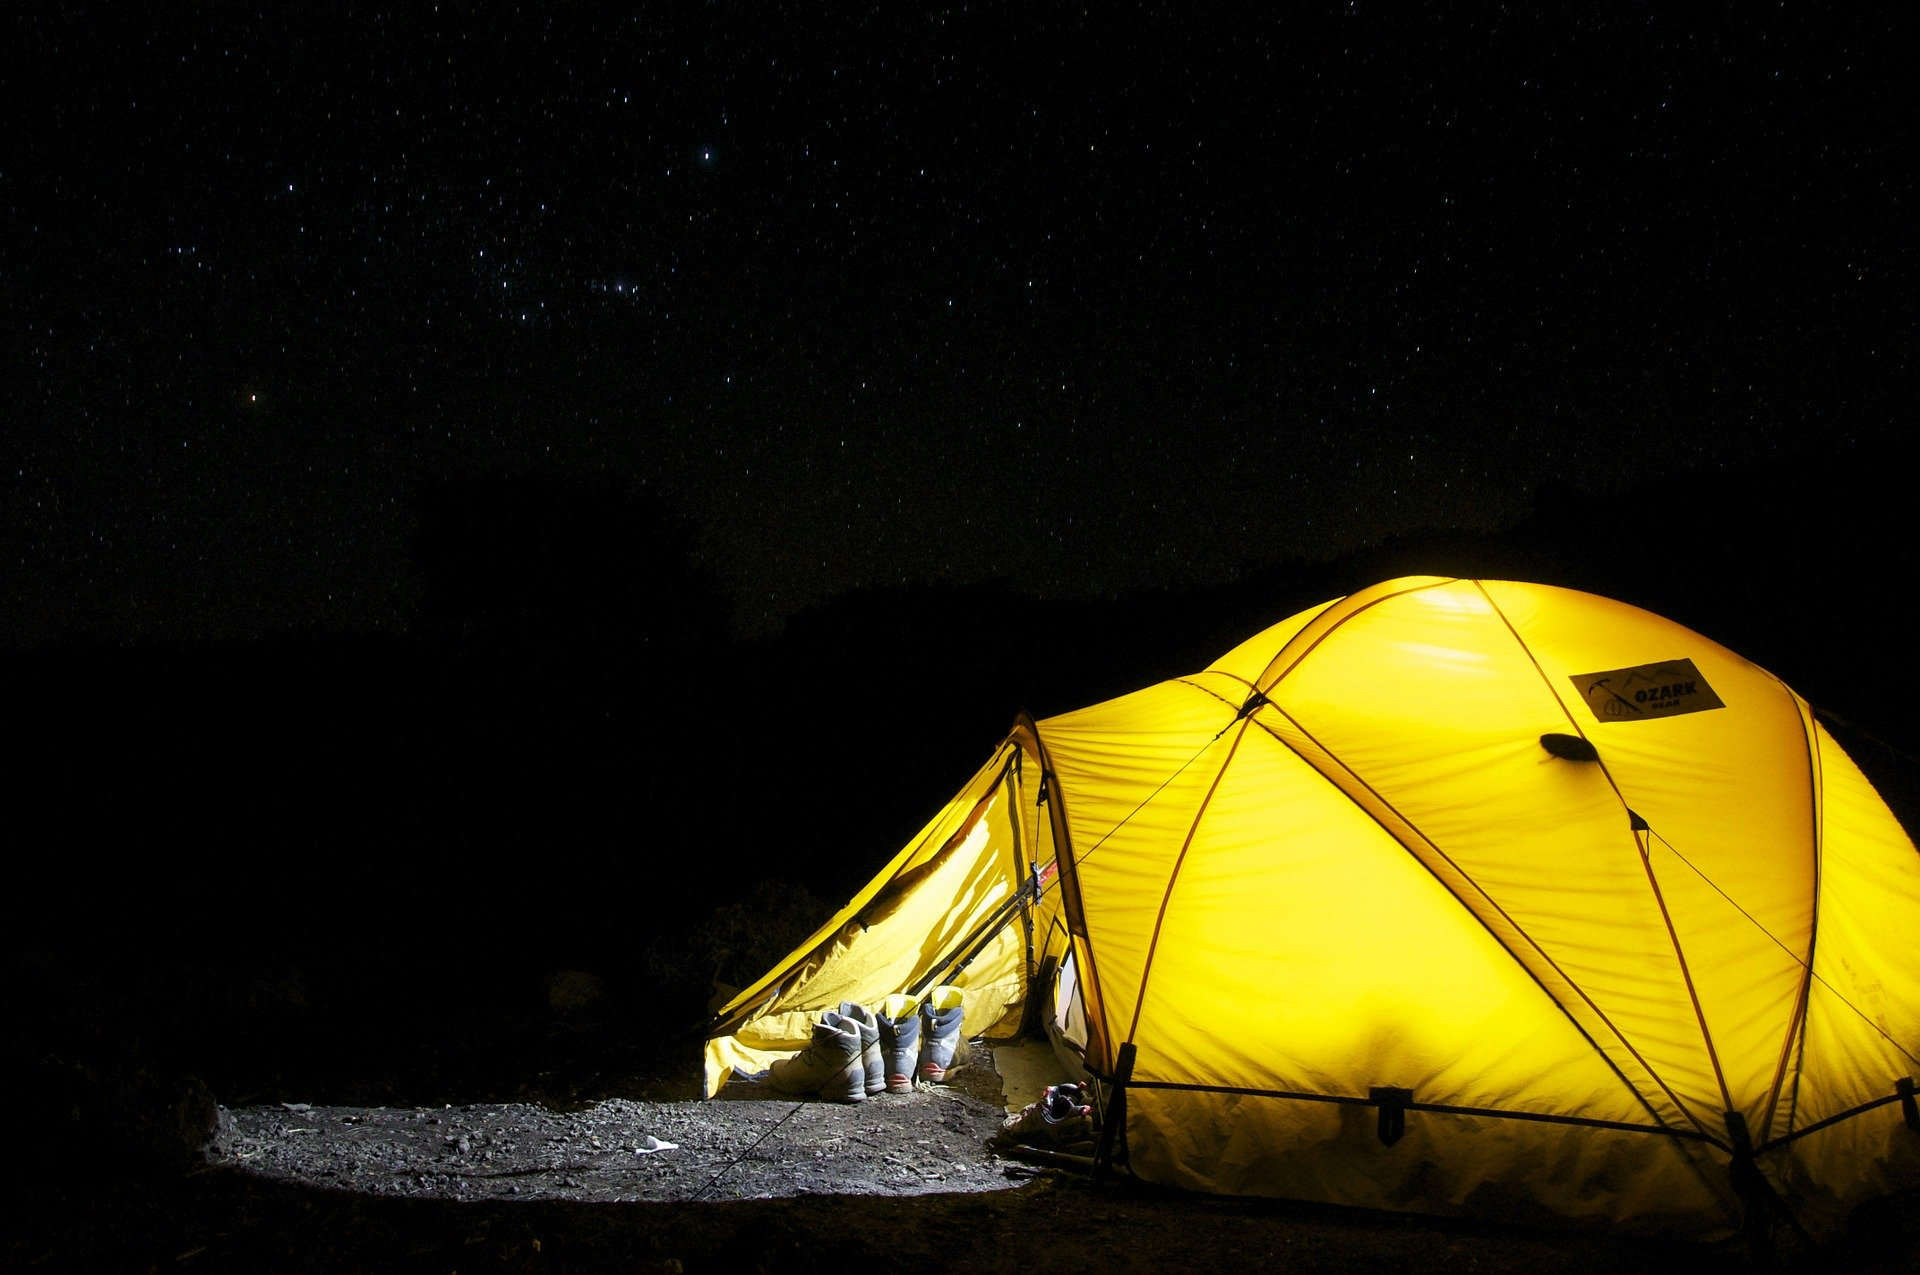 A photo of a yellow tent in pitch black darkness, lit up brightly from the inside.